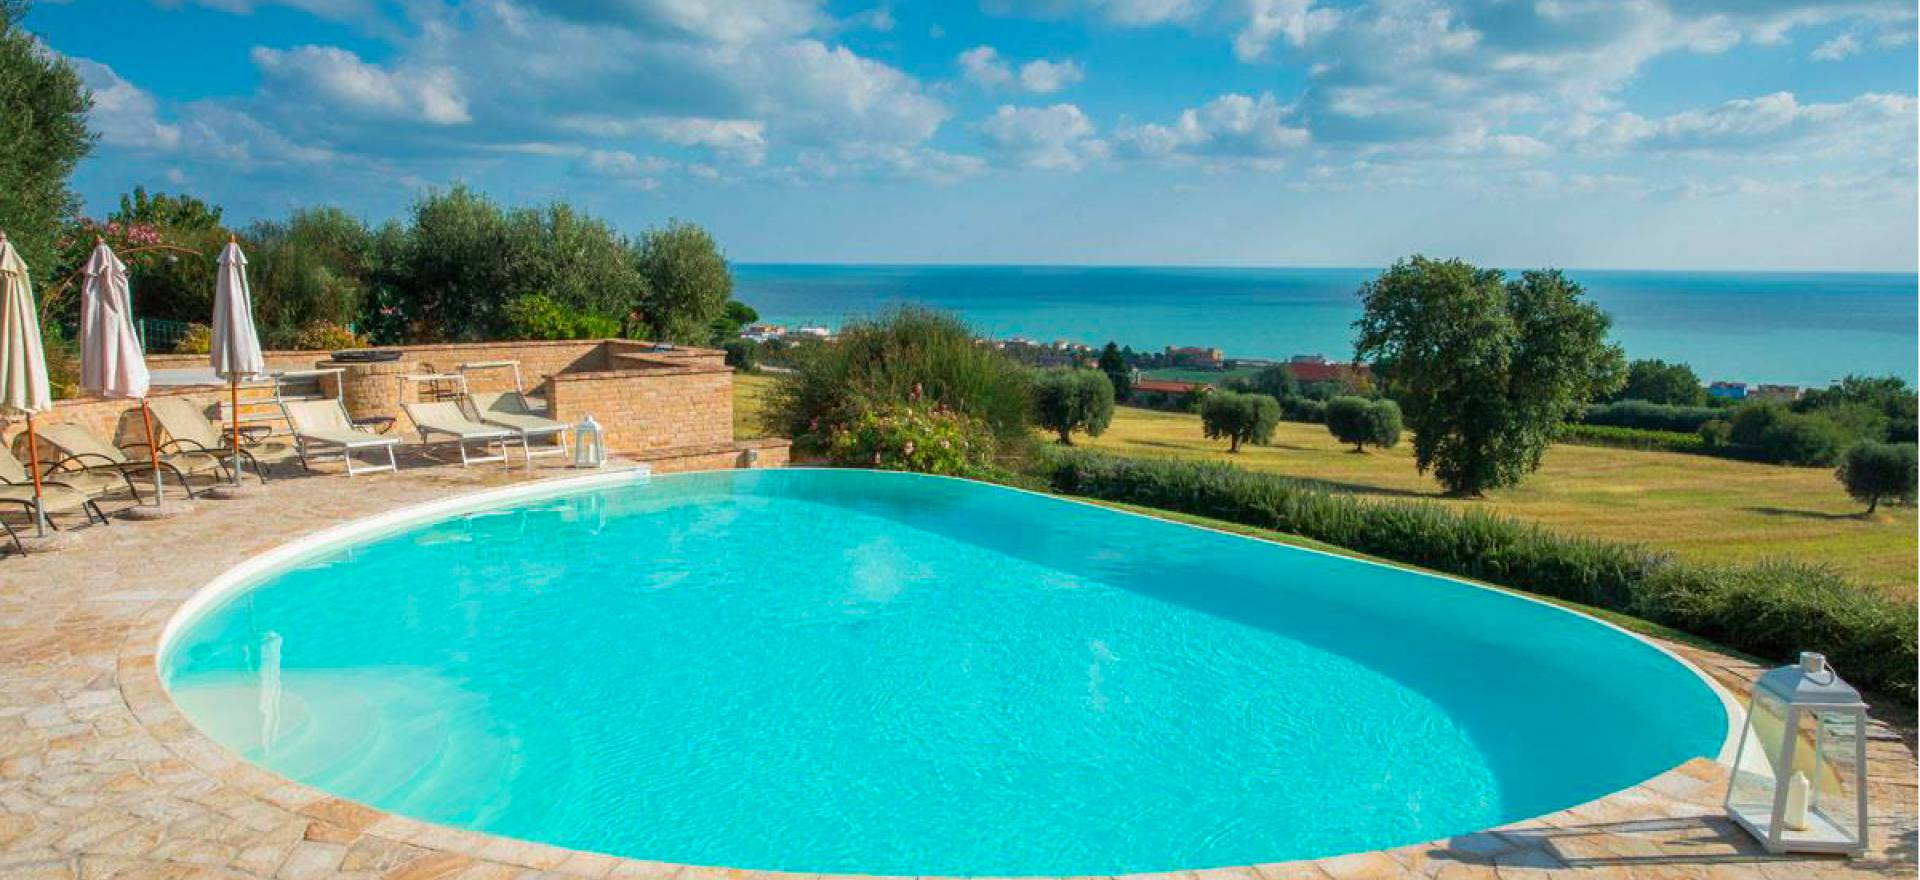 Agriturismo Marche Agriturismo Marche, elegant rooms and a sea view